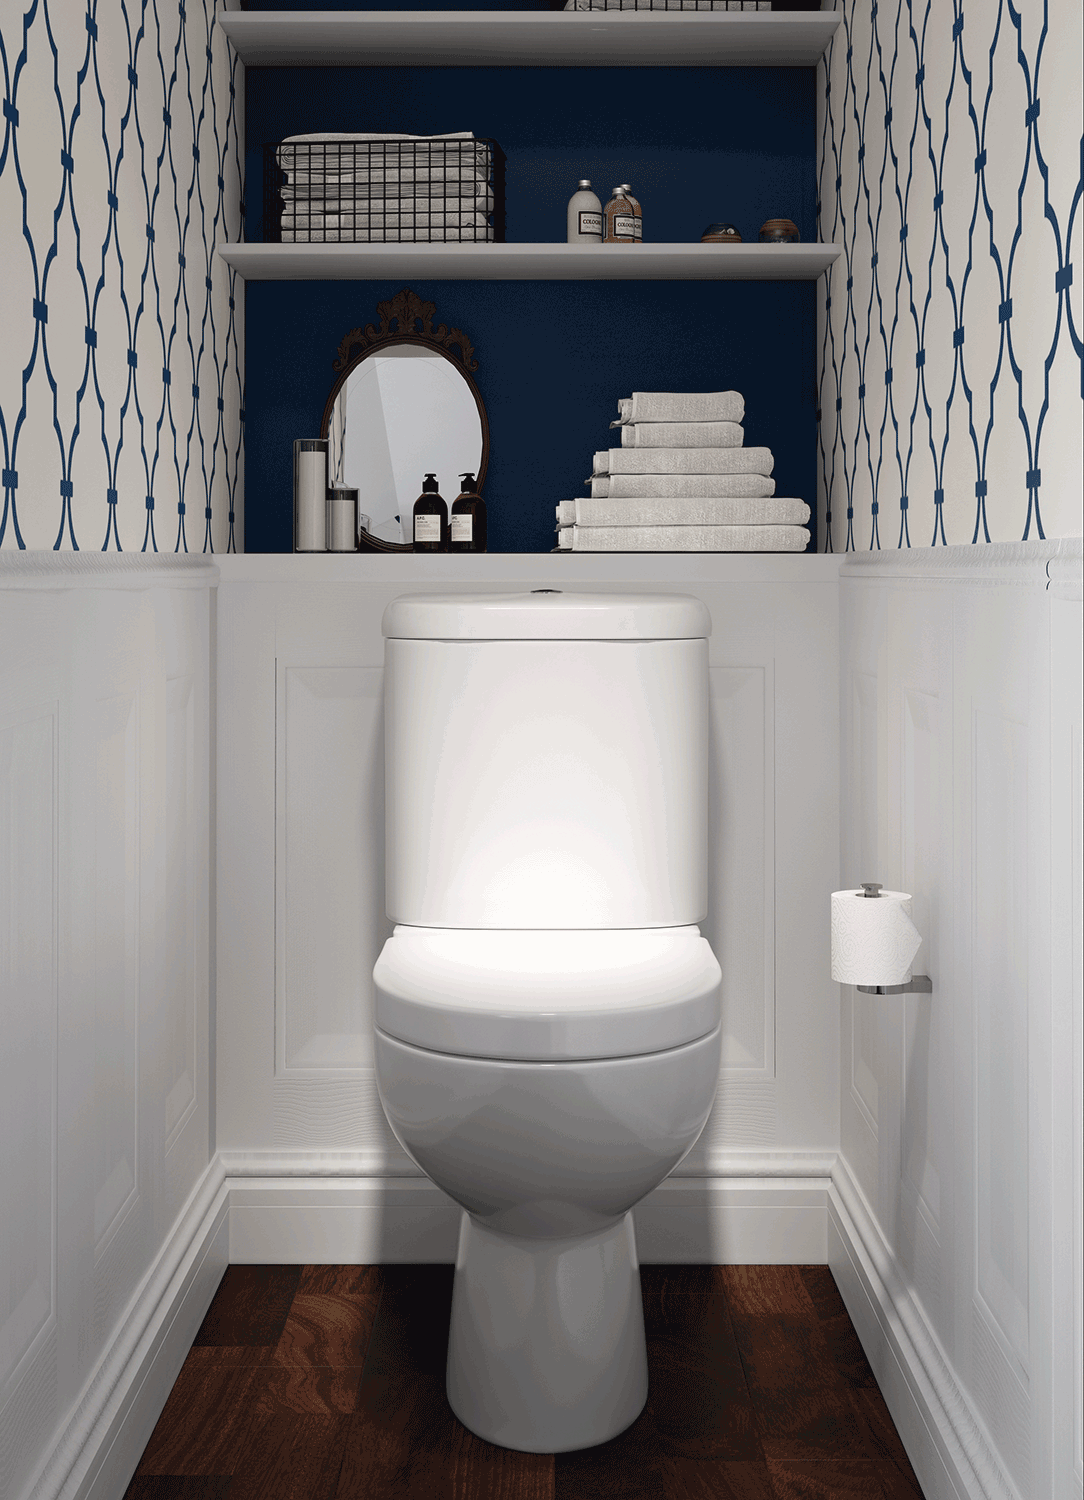 Low Cost Rest Room Household Furniture In 2020 Small Toilet Decor Small Bathroom Makeover Toilet Room Decor